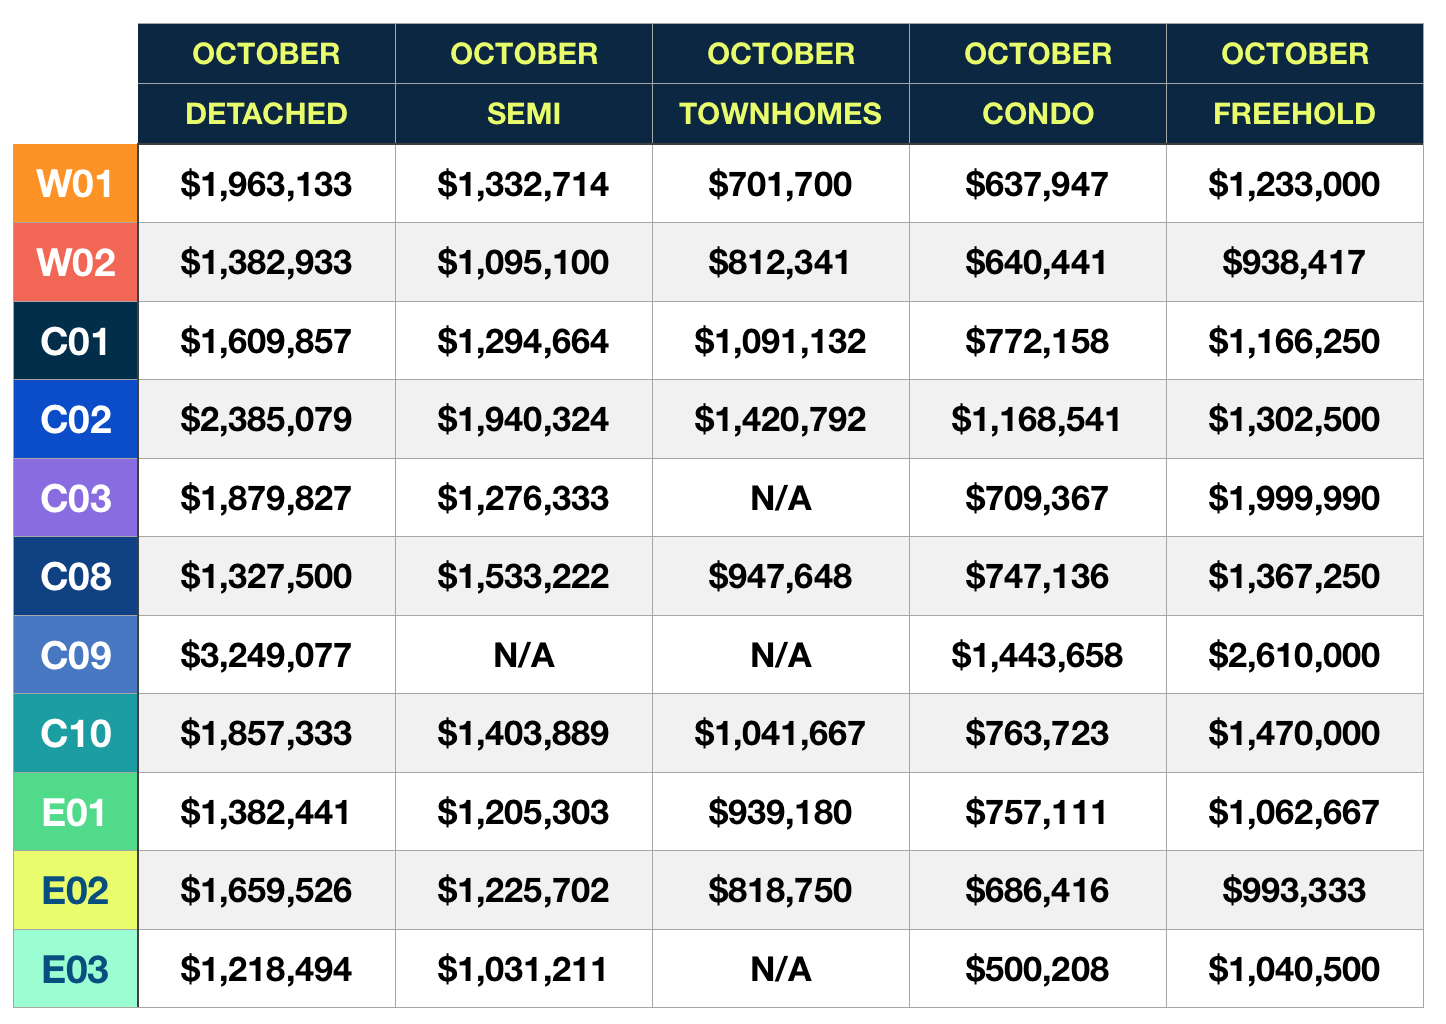 october 2019 average home prices